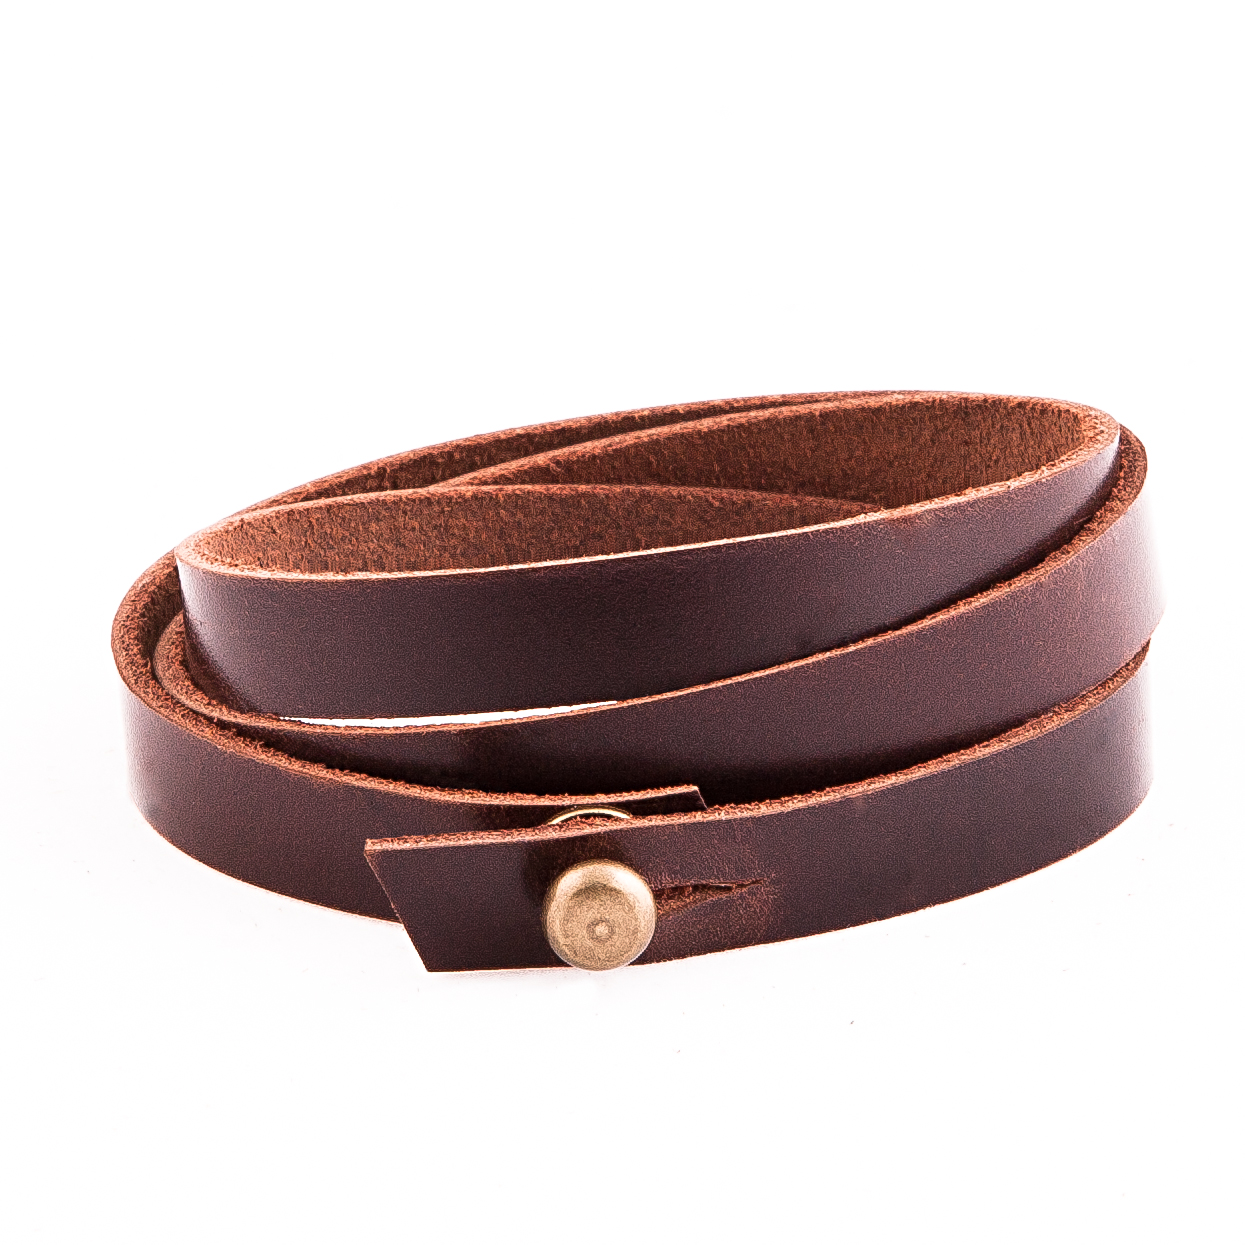 Brown_Leather_Bracelet_Designed_by_Stella_Soomlais_3x-1